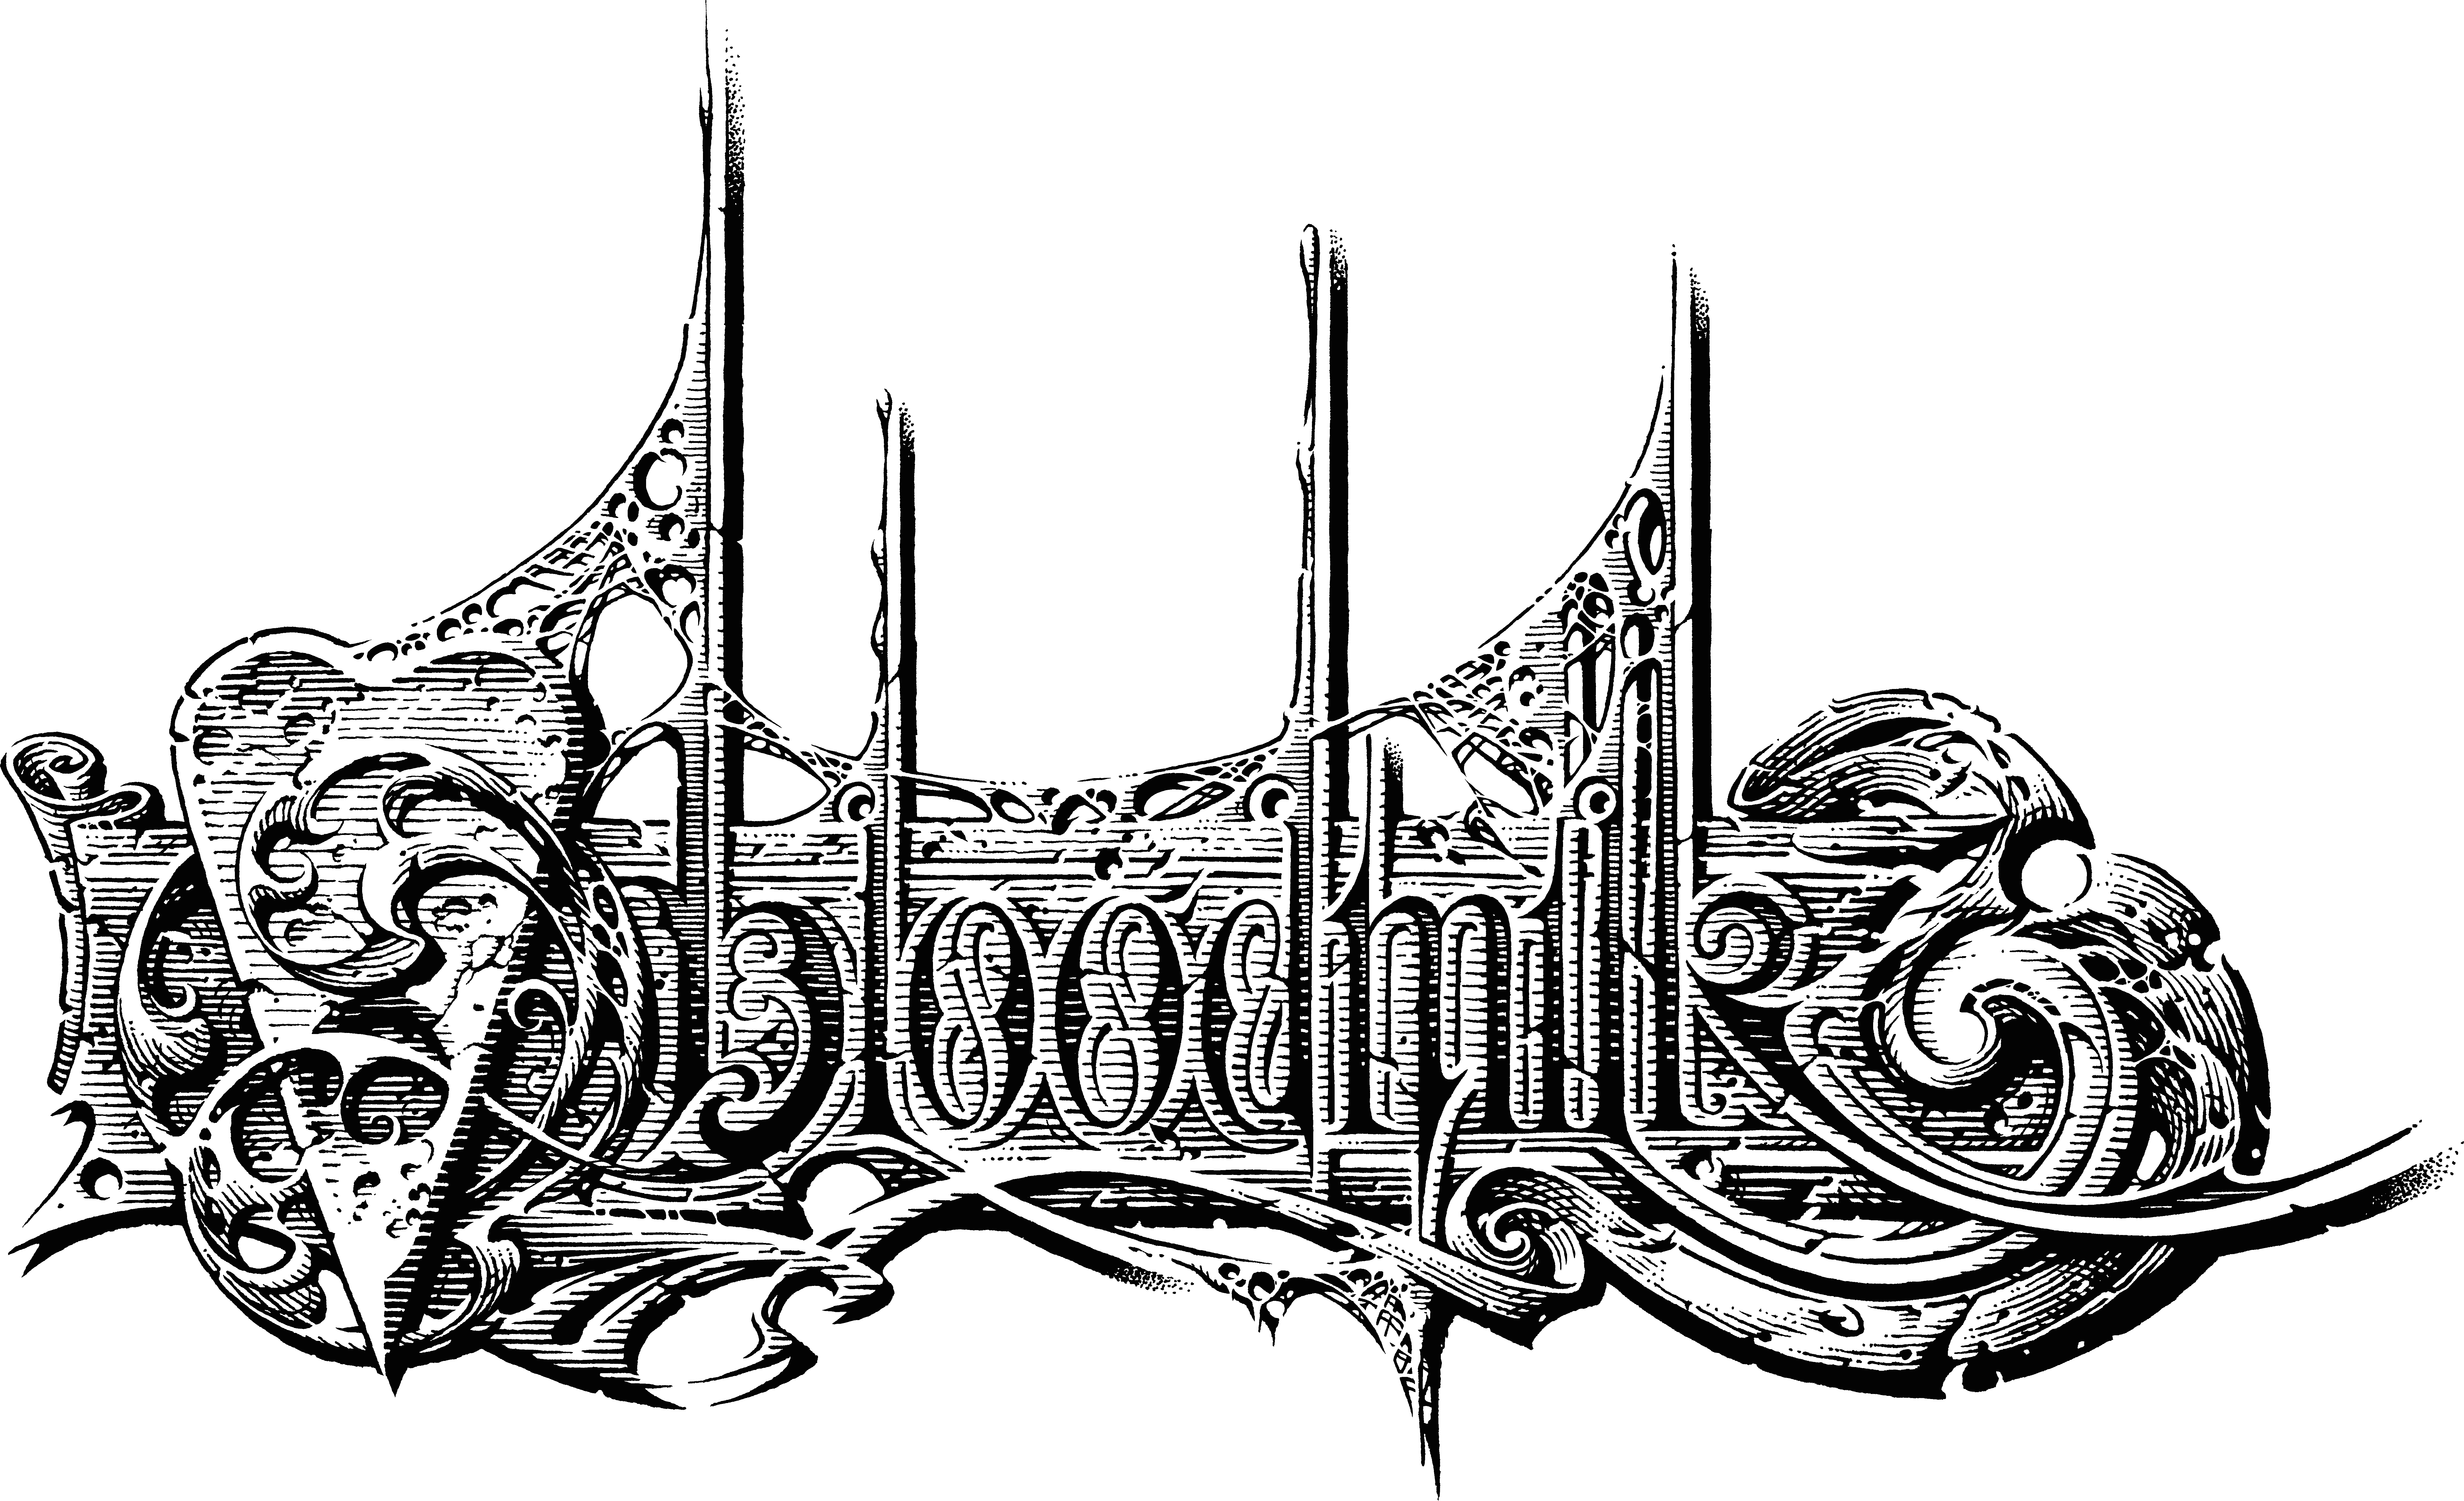 bloodmilk jewels